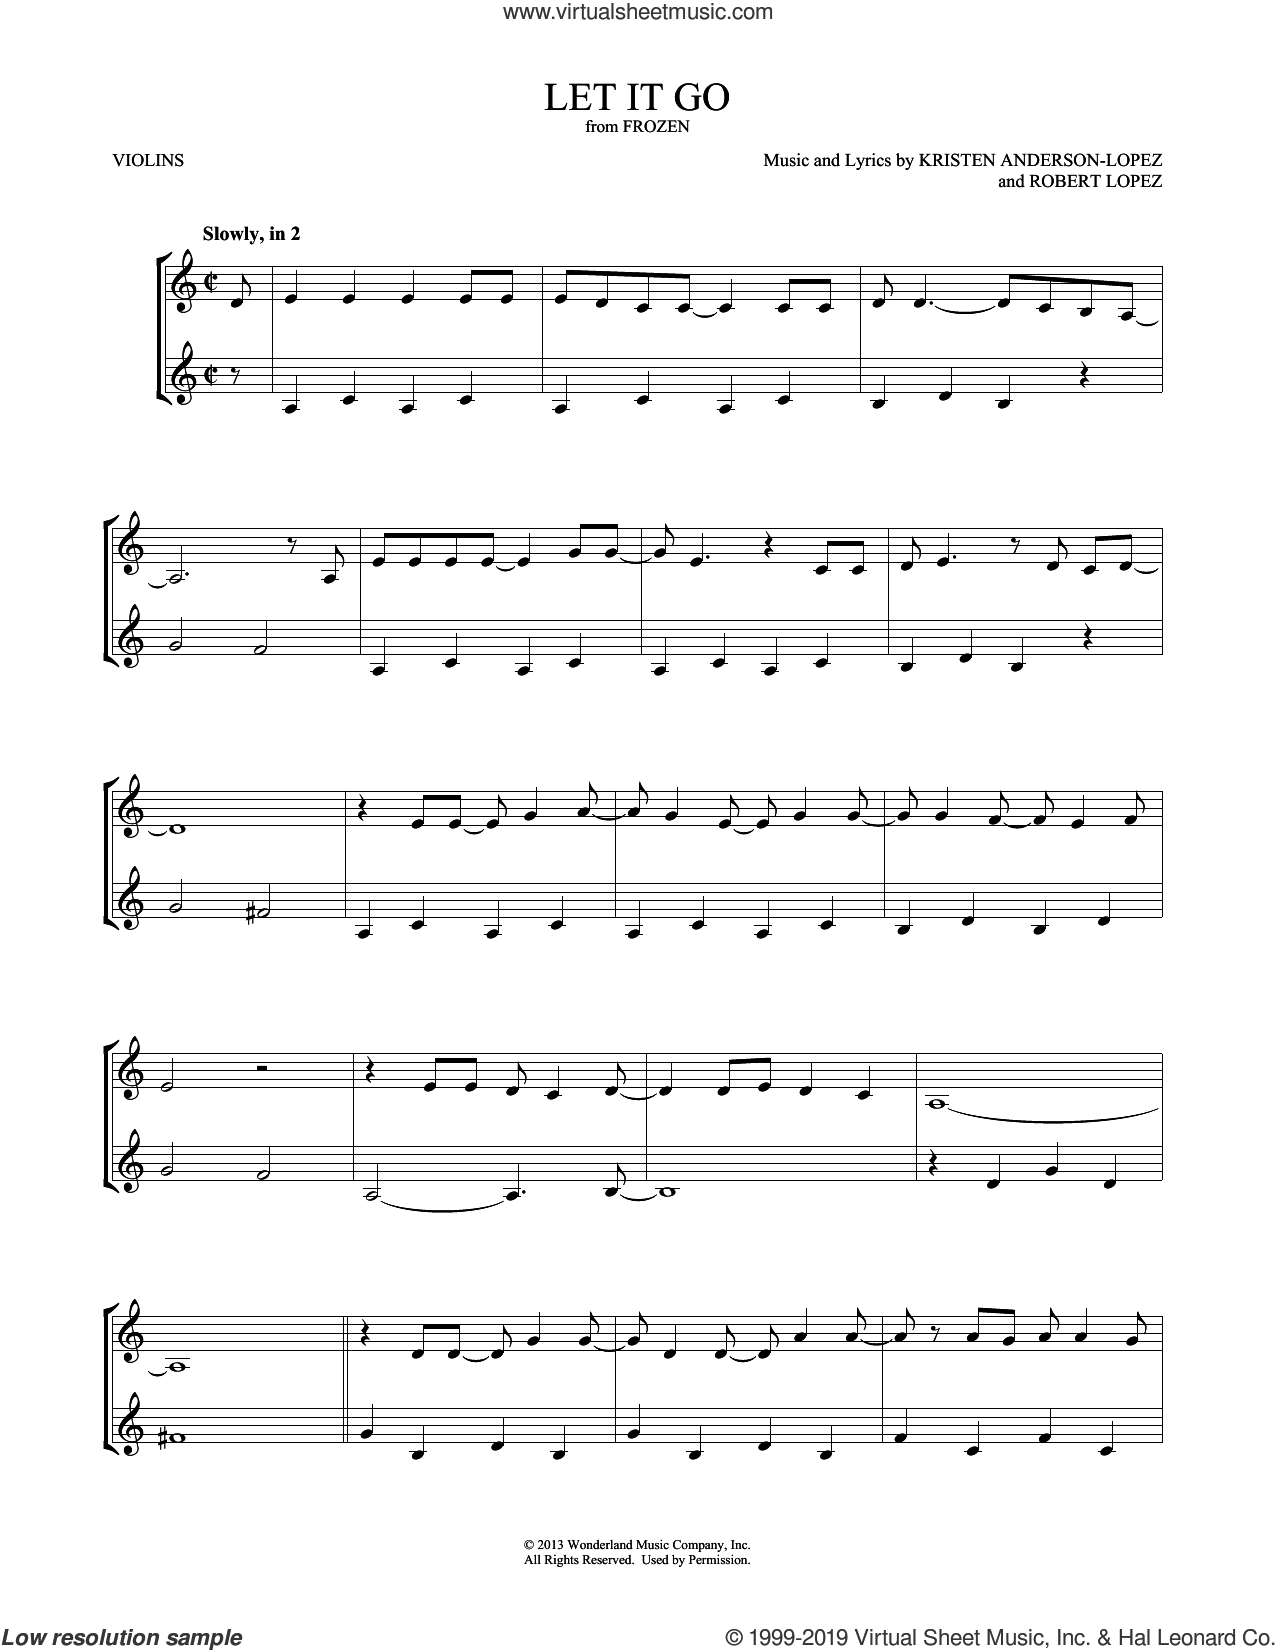 Let It Go (from Frozen) sheet music for two violins (duets, violin duets) by Idina Menzel, Mark Phillips, Kristen Anderson-Lopez and Robert Lopez, intermediate skill level